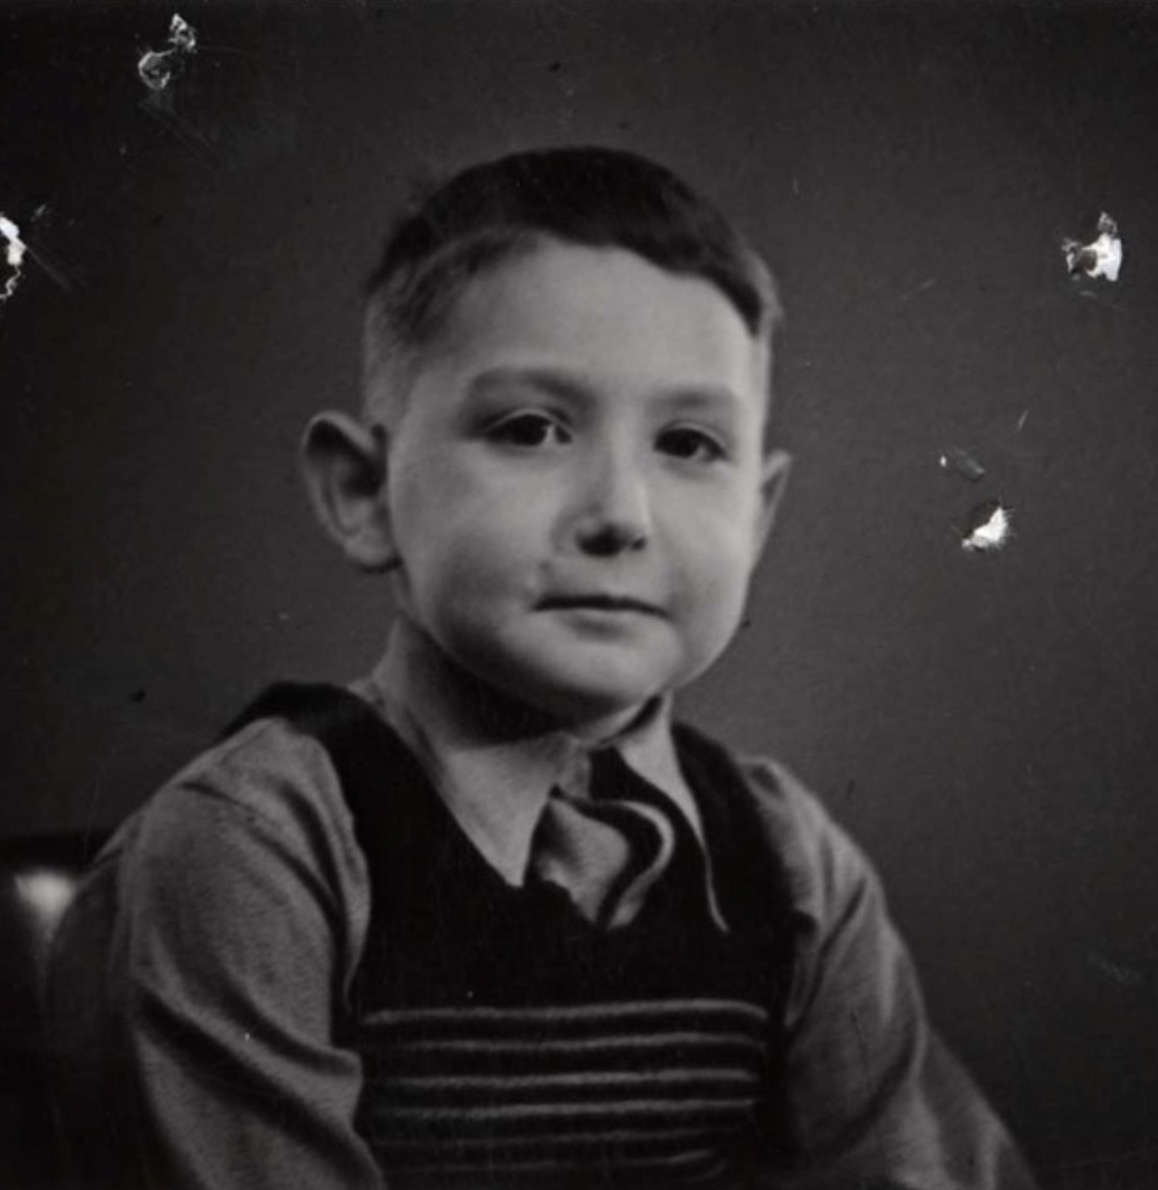 25 February 1931 | A German Jewish boy, Gert Wolfgang Schönfeld, was born in Berlin.   In February 1943 he was deported to #Auschwitz and murdered in a gas chamber.